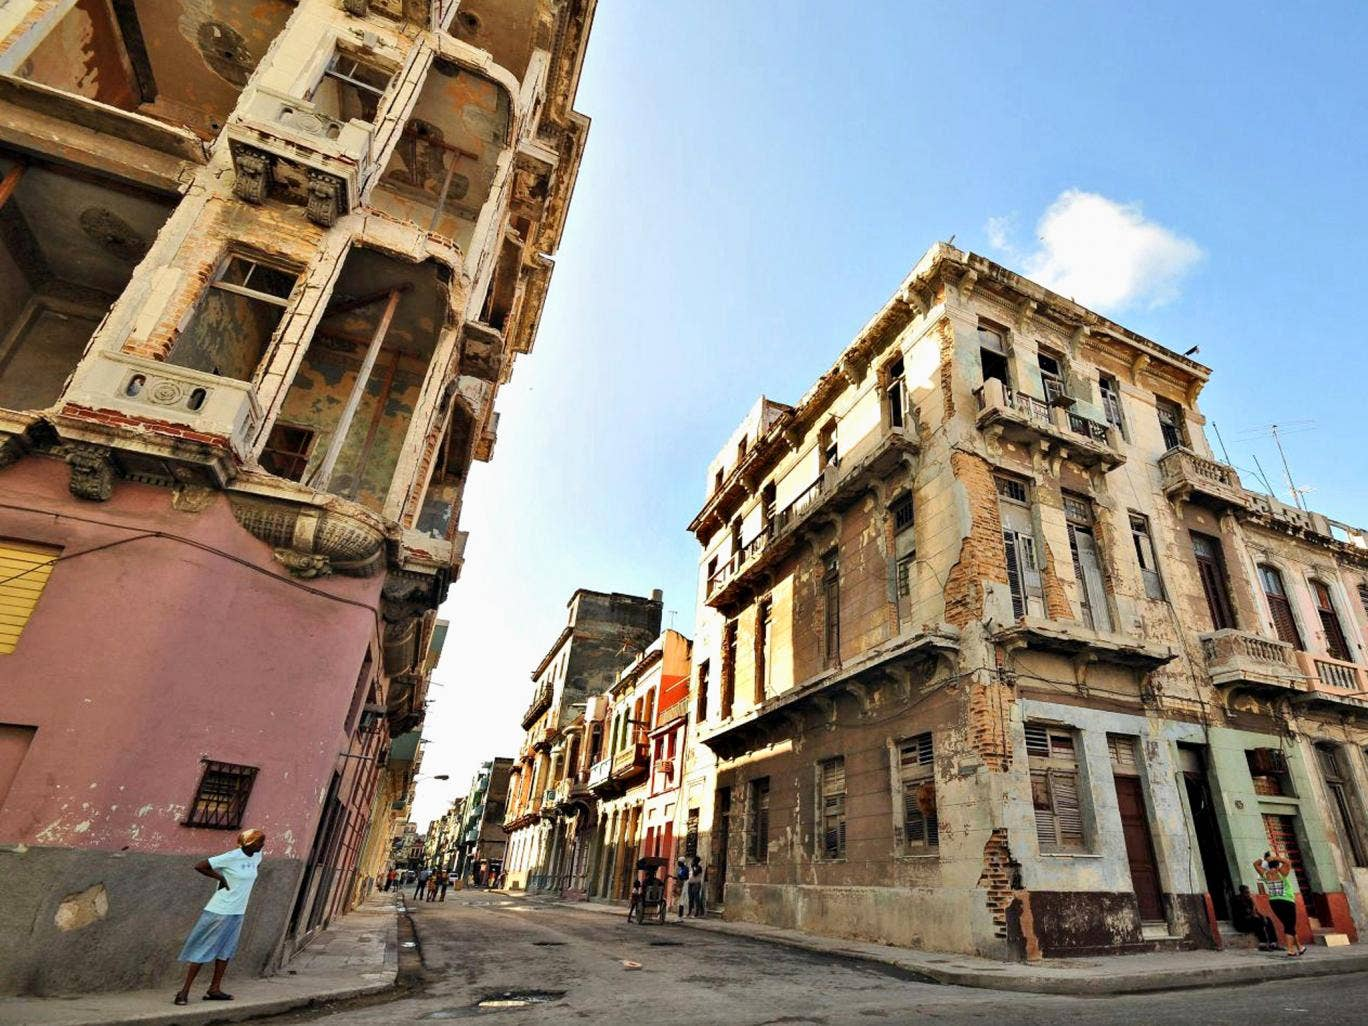 Cuba (not so) libre: a night out in Havana went awry for the actress